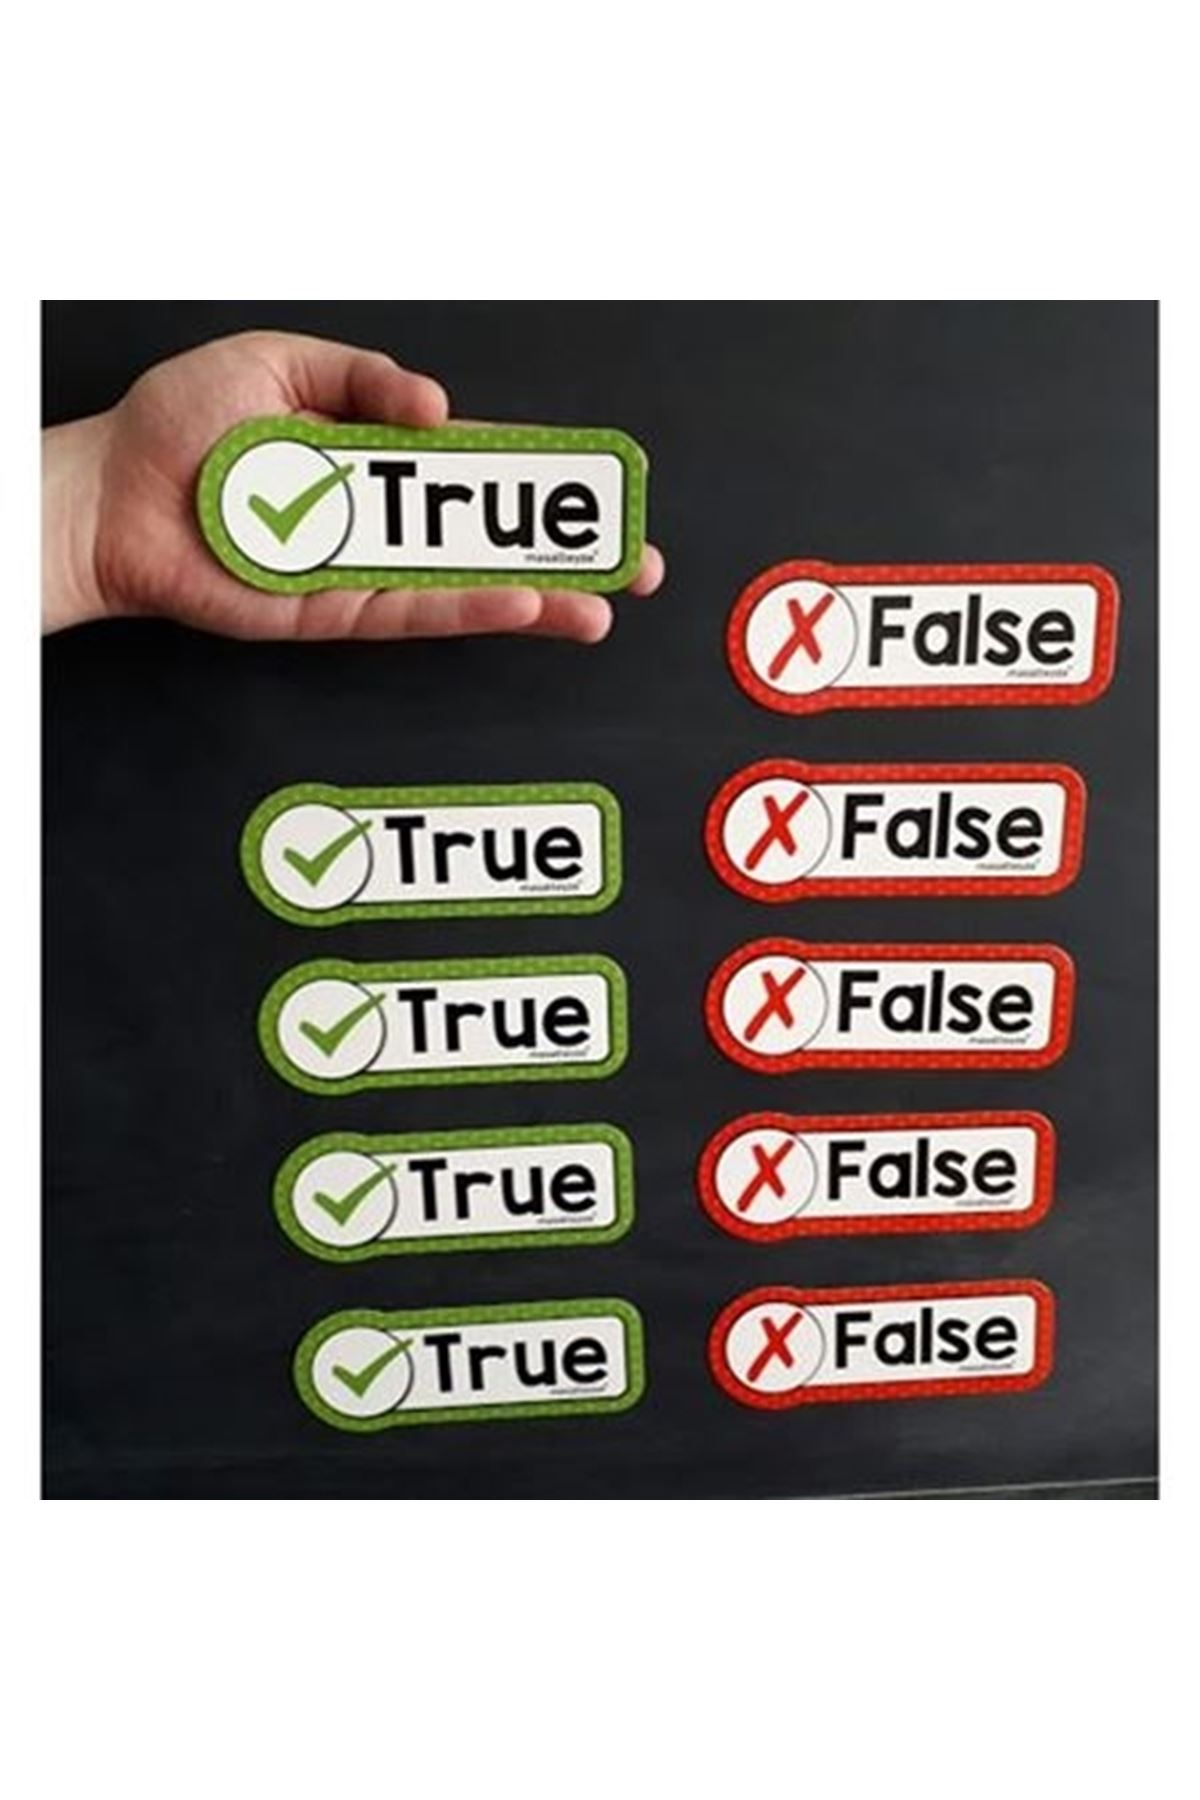 True-False set